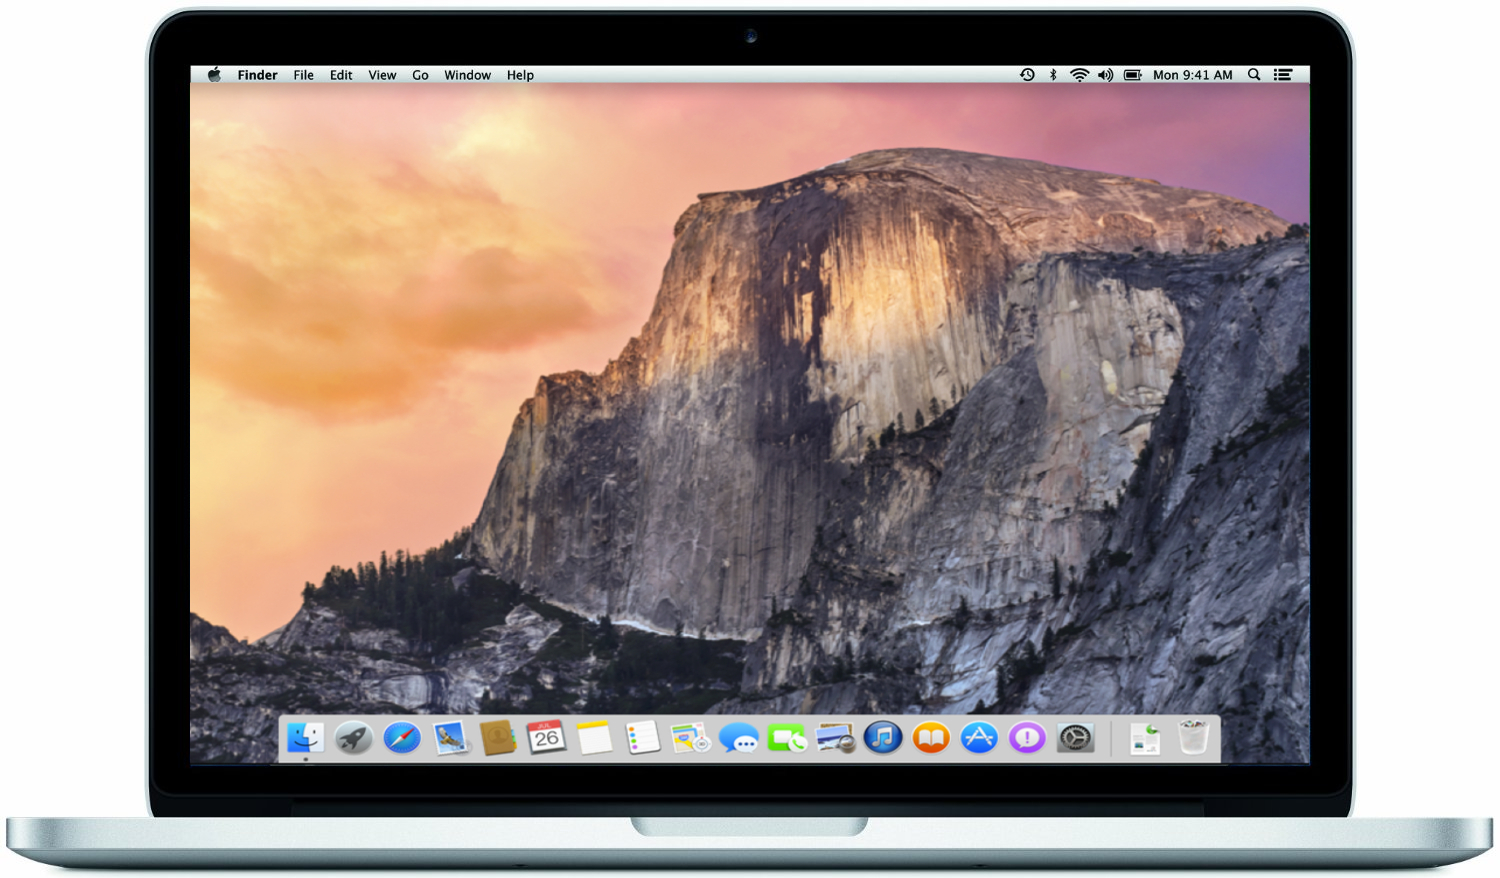 Apple MacBook Pro 13.3 (Retina Display) 2.9 GHz Intel Core i5 8 GB RAM 512 GB PCIe SSD [Early 2015]